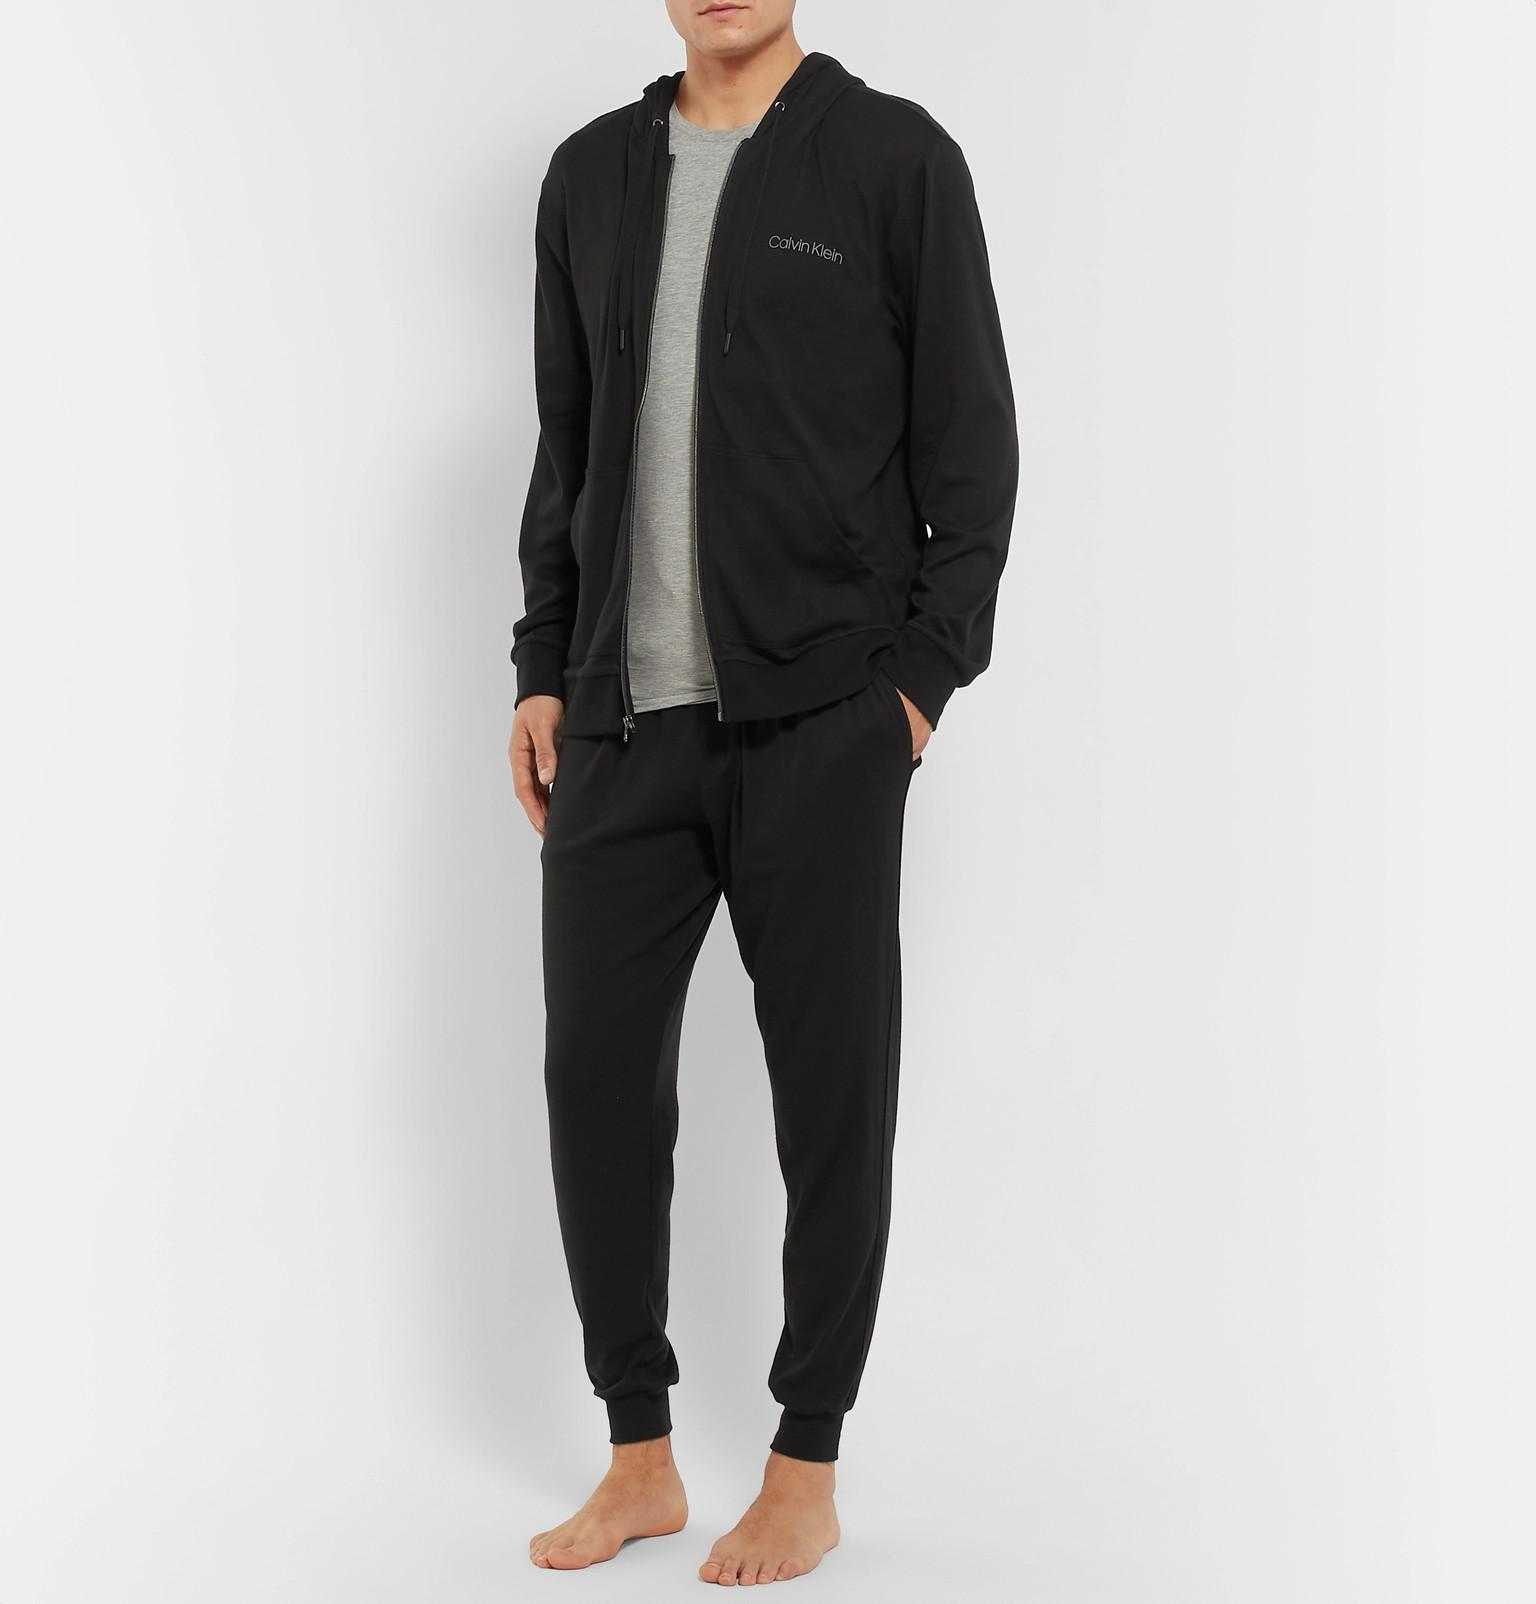 eb0d9083a7d6 Calvin Klein - Black Tapered Stretch Cotton And Modal-blend Sweatpants for  Men - Lyst. View fullscreen